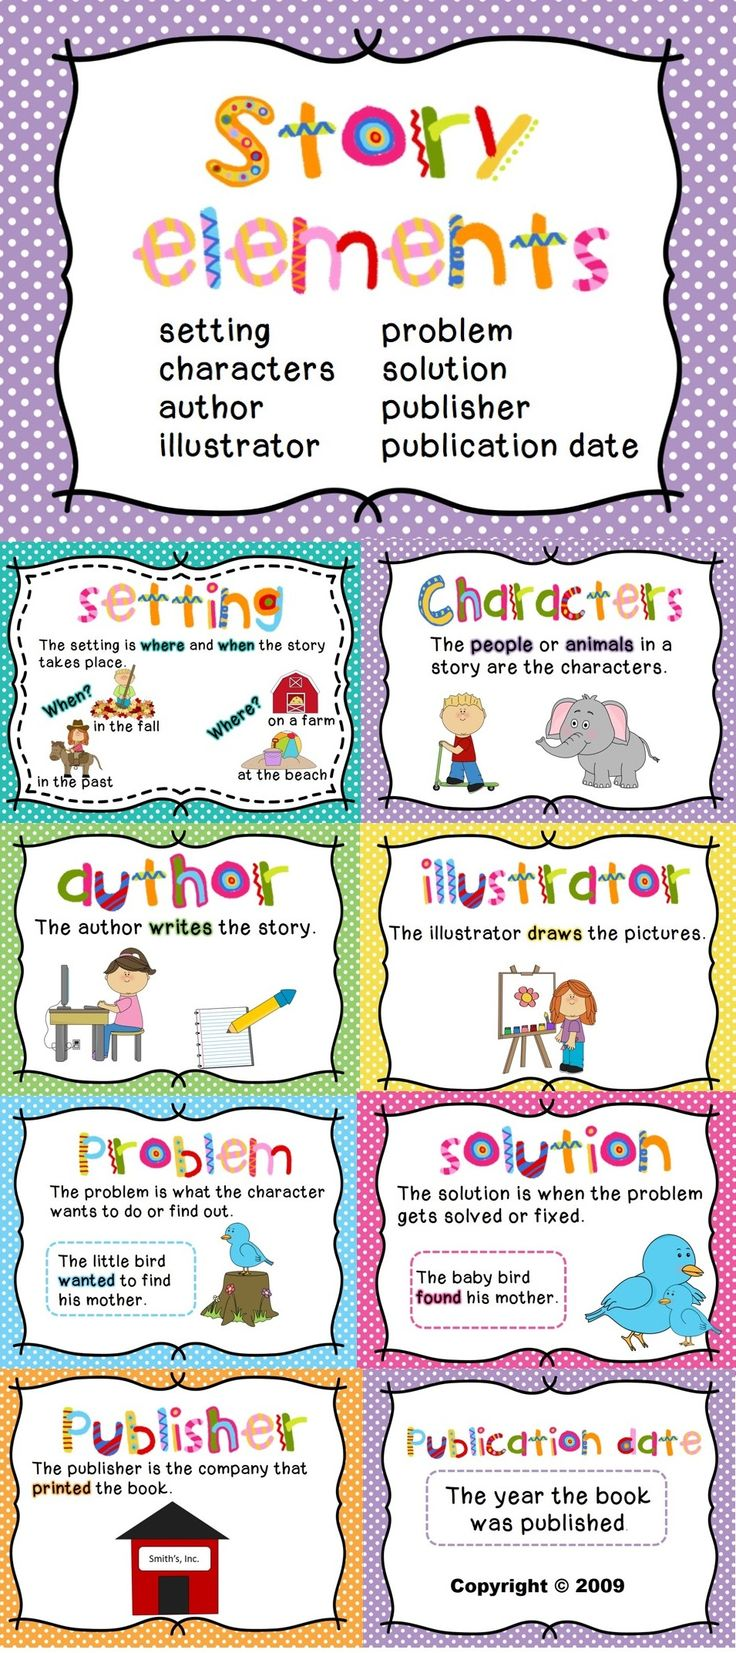 Posters For Setting Characters Author Illustrator Problem